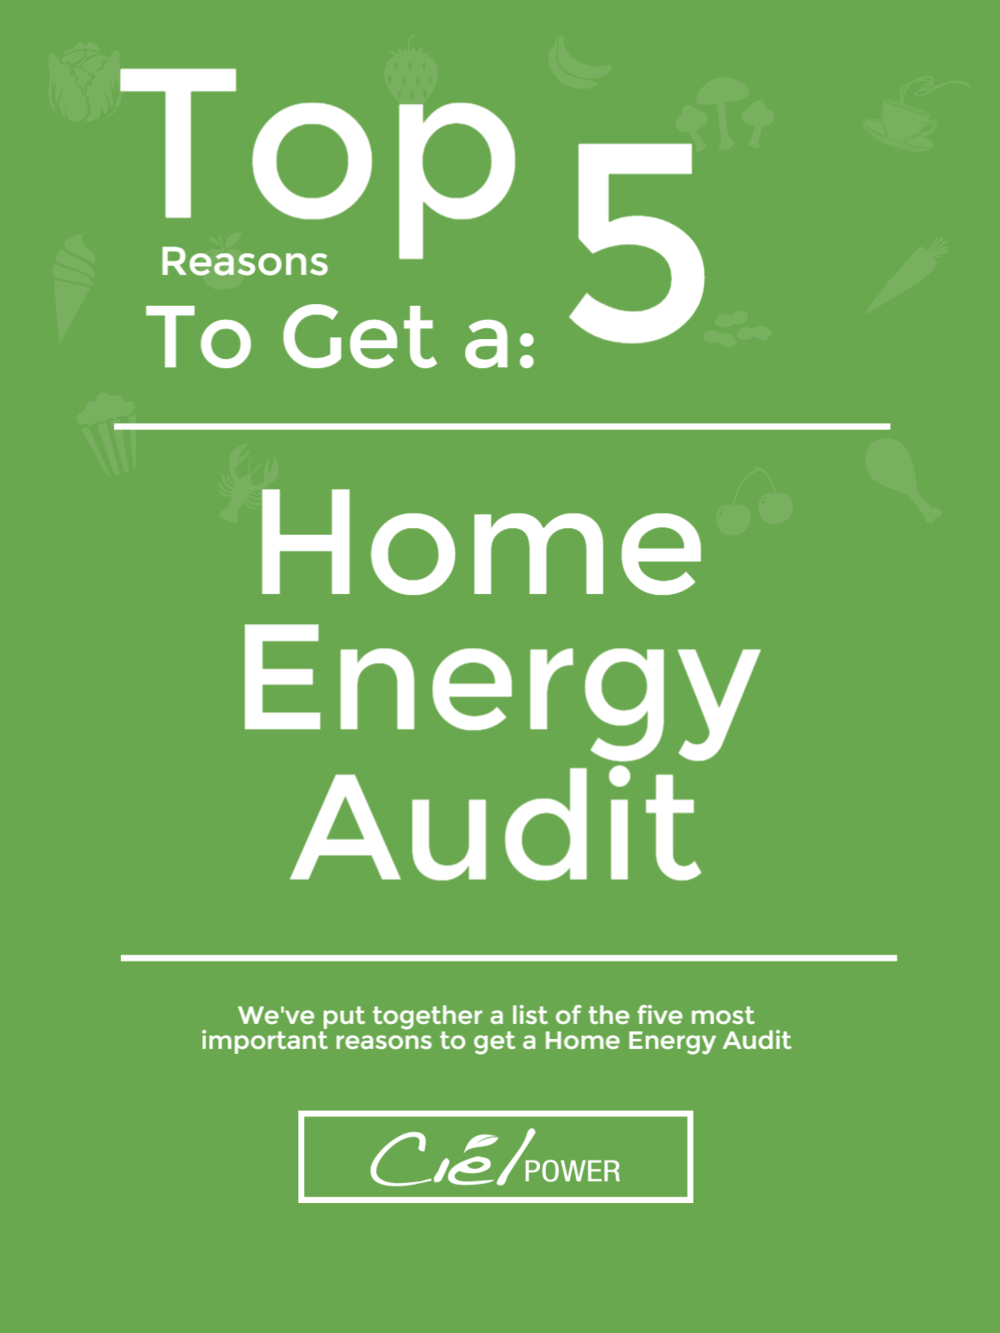 Top 5 Reasons to Get A Home Energy Audit